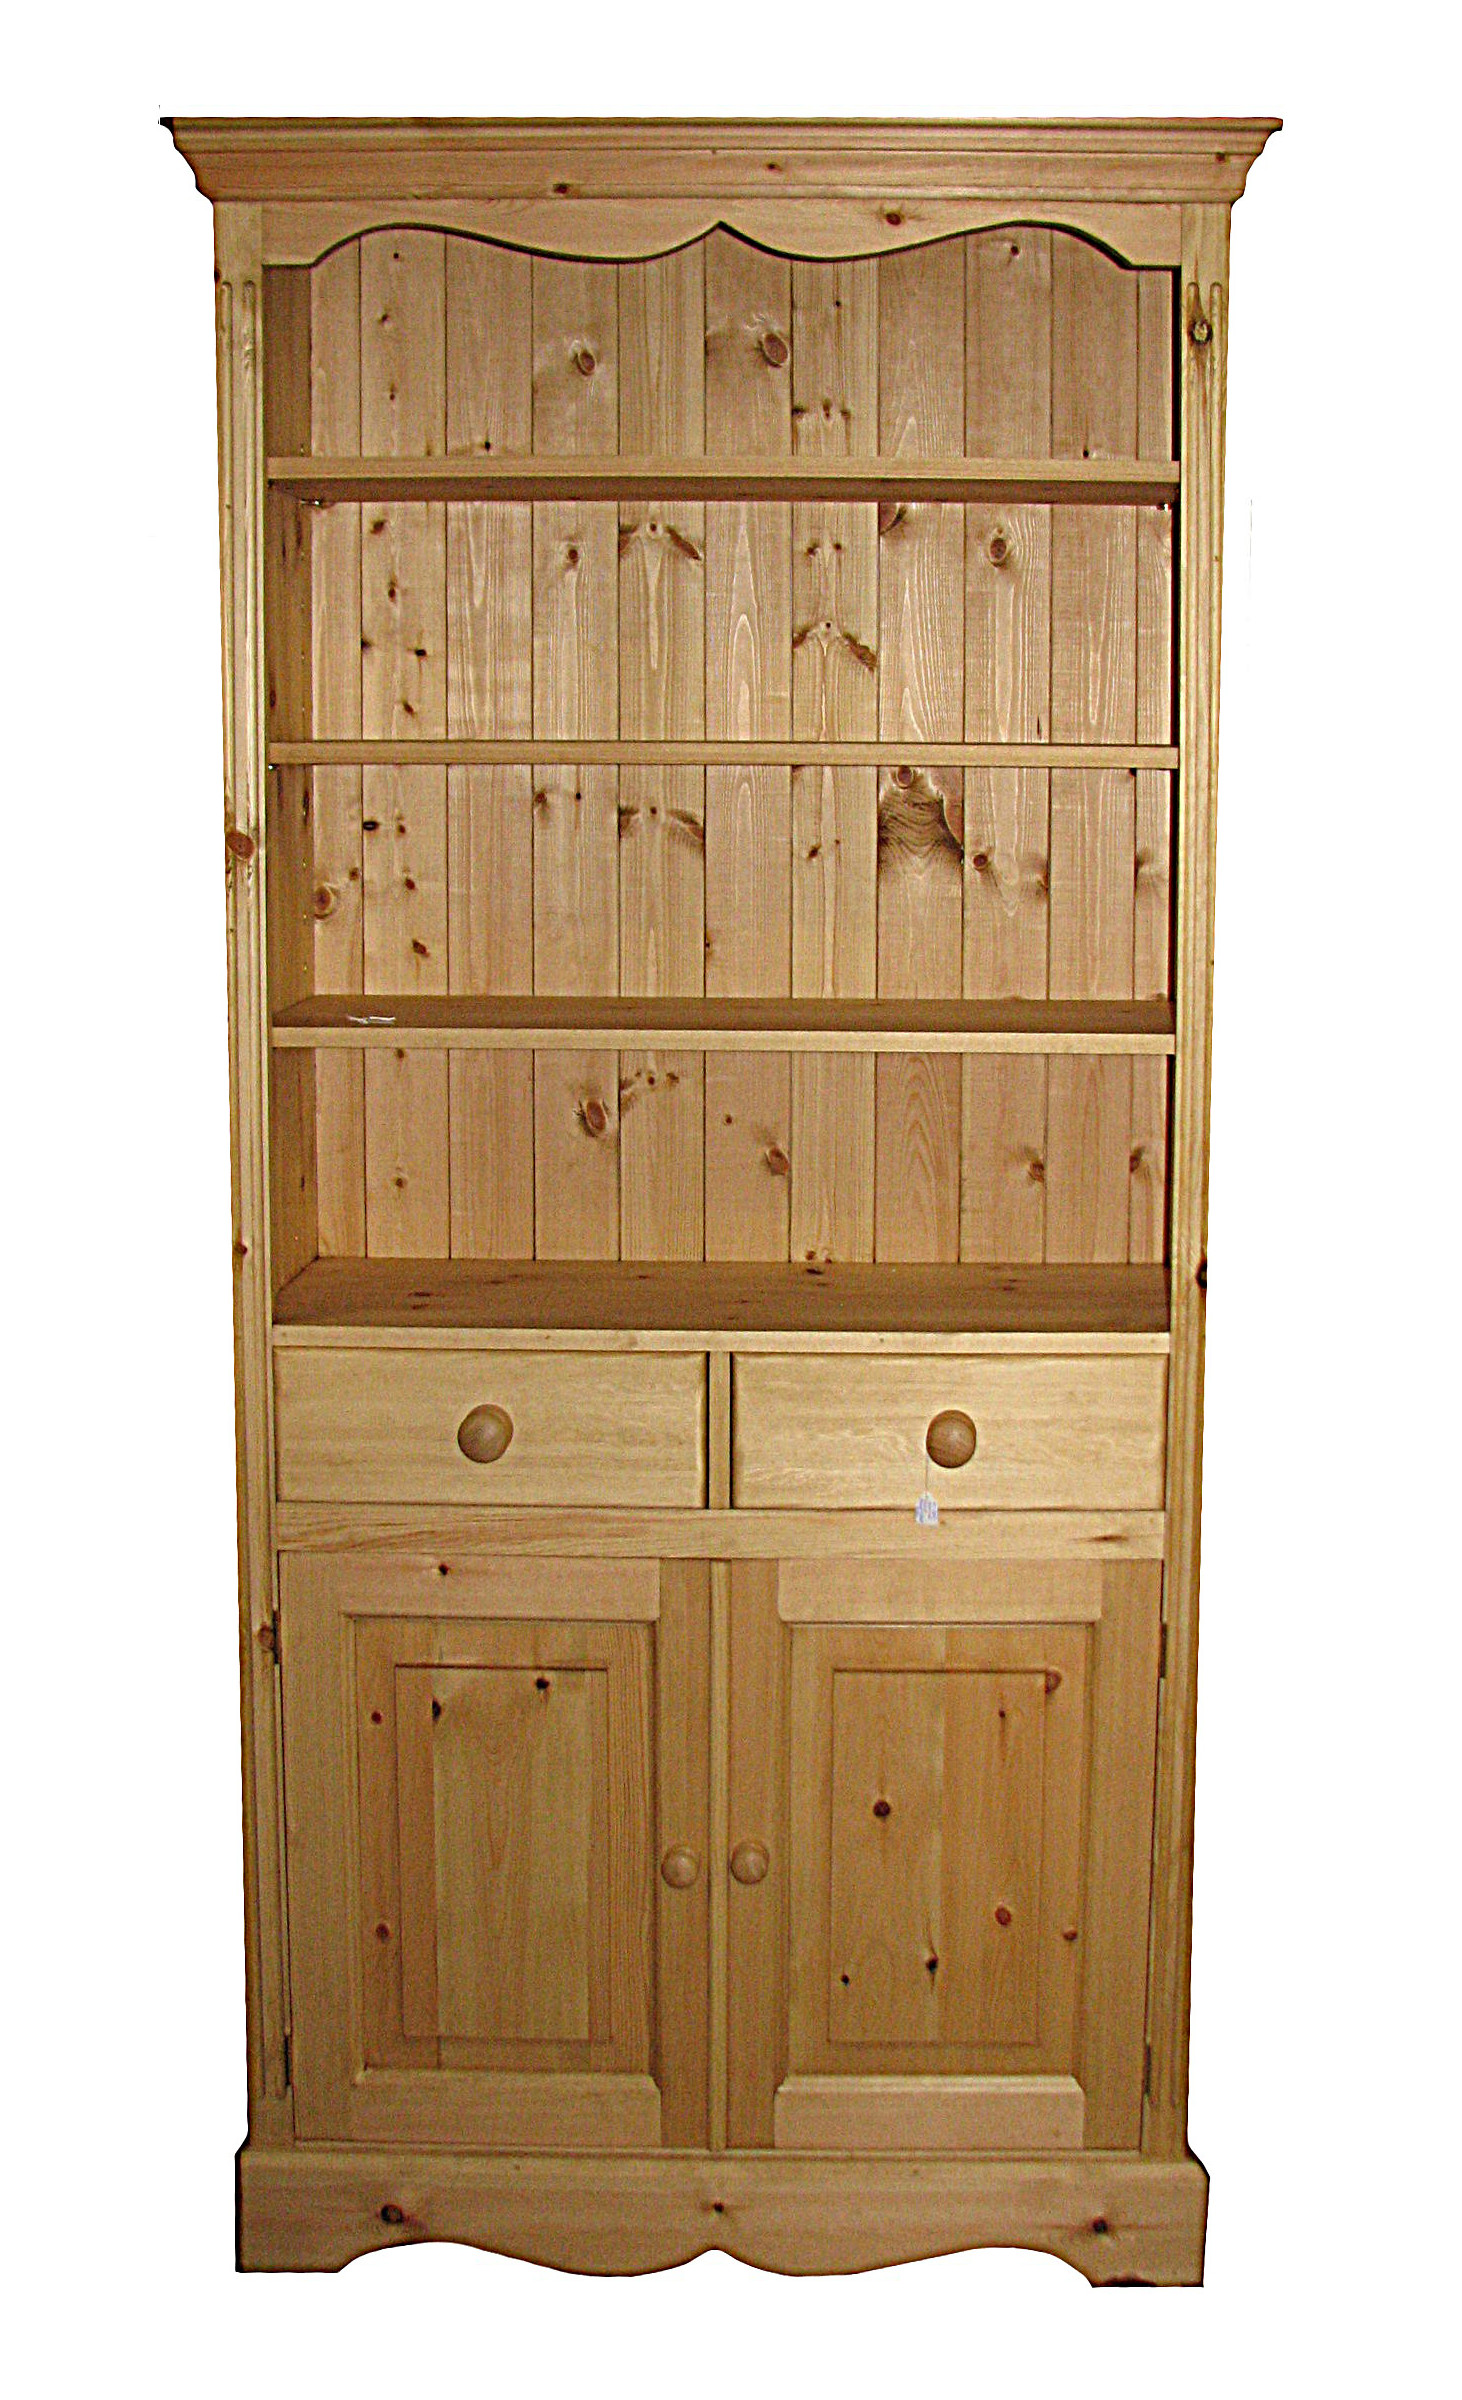 With adjustable shelves and doors kerris farmhouse pine for Furniture 30cm deep